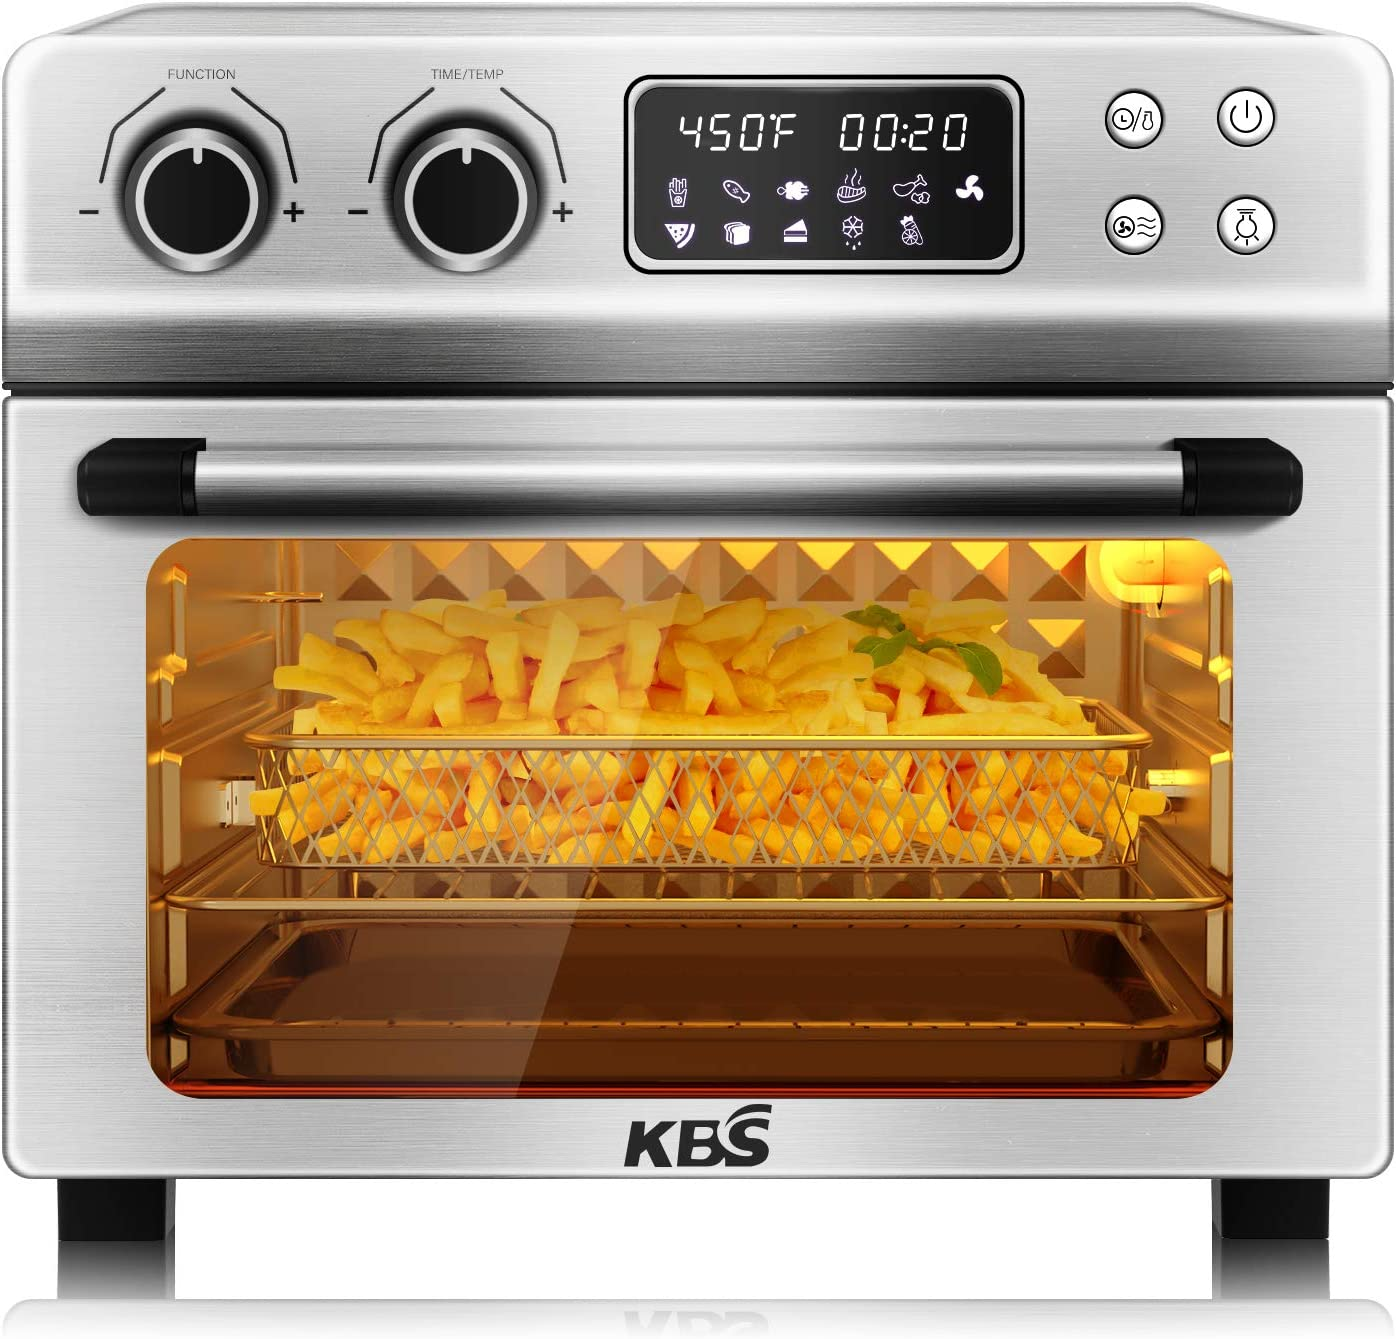 KBS 1700W Stainless Steel 10-in-1 Air Fryer Oven with Dehydrator/Rotisserie/Bake/Roast/Grill/Broil Function, 24QT Large Digital Countertop Toaster Oven, Max 450℉ & 60 Min Timer, 7 Accessories